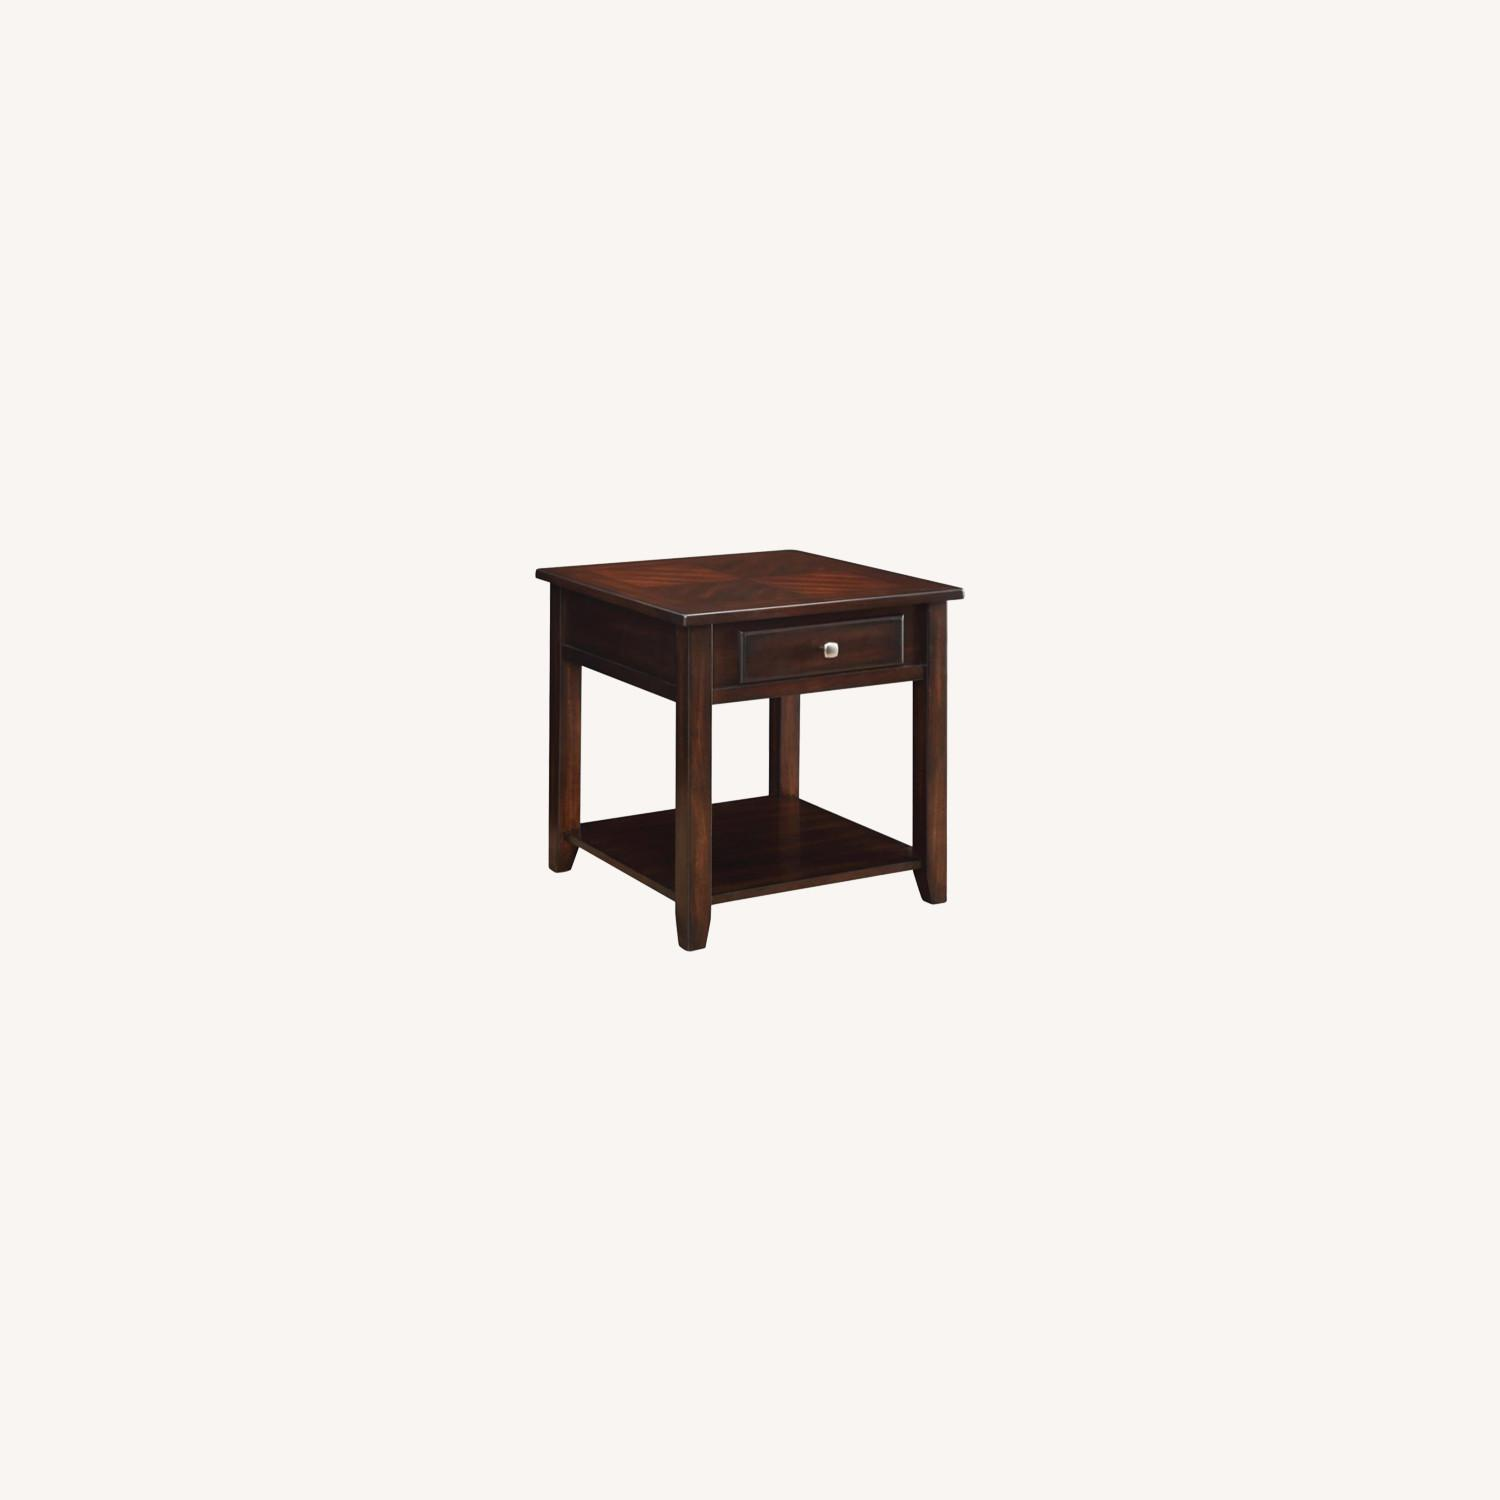 End Table In A Rich Warm Walnut Finish - image-4